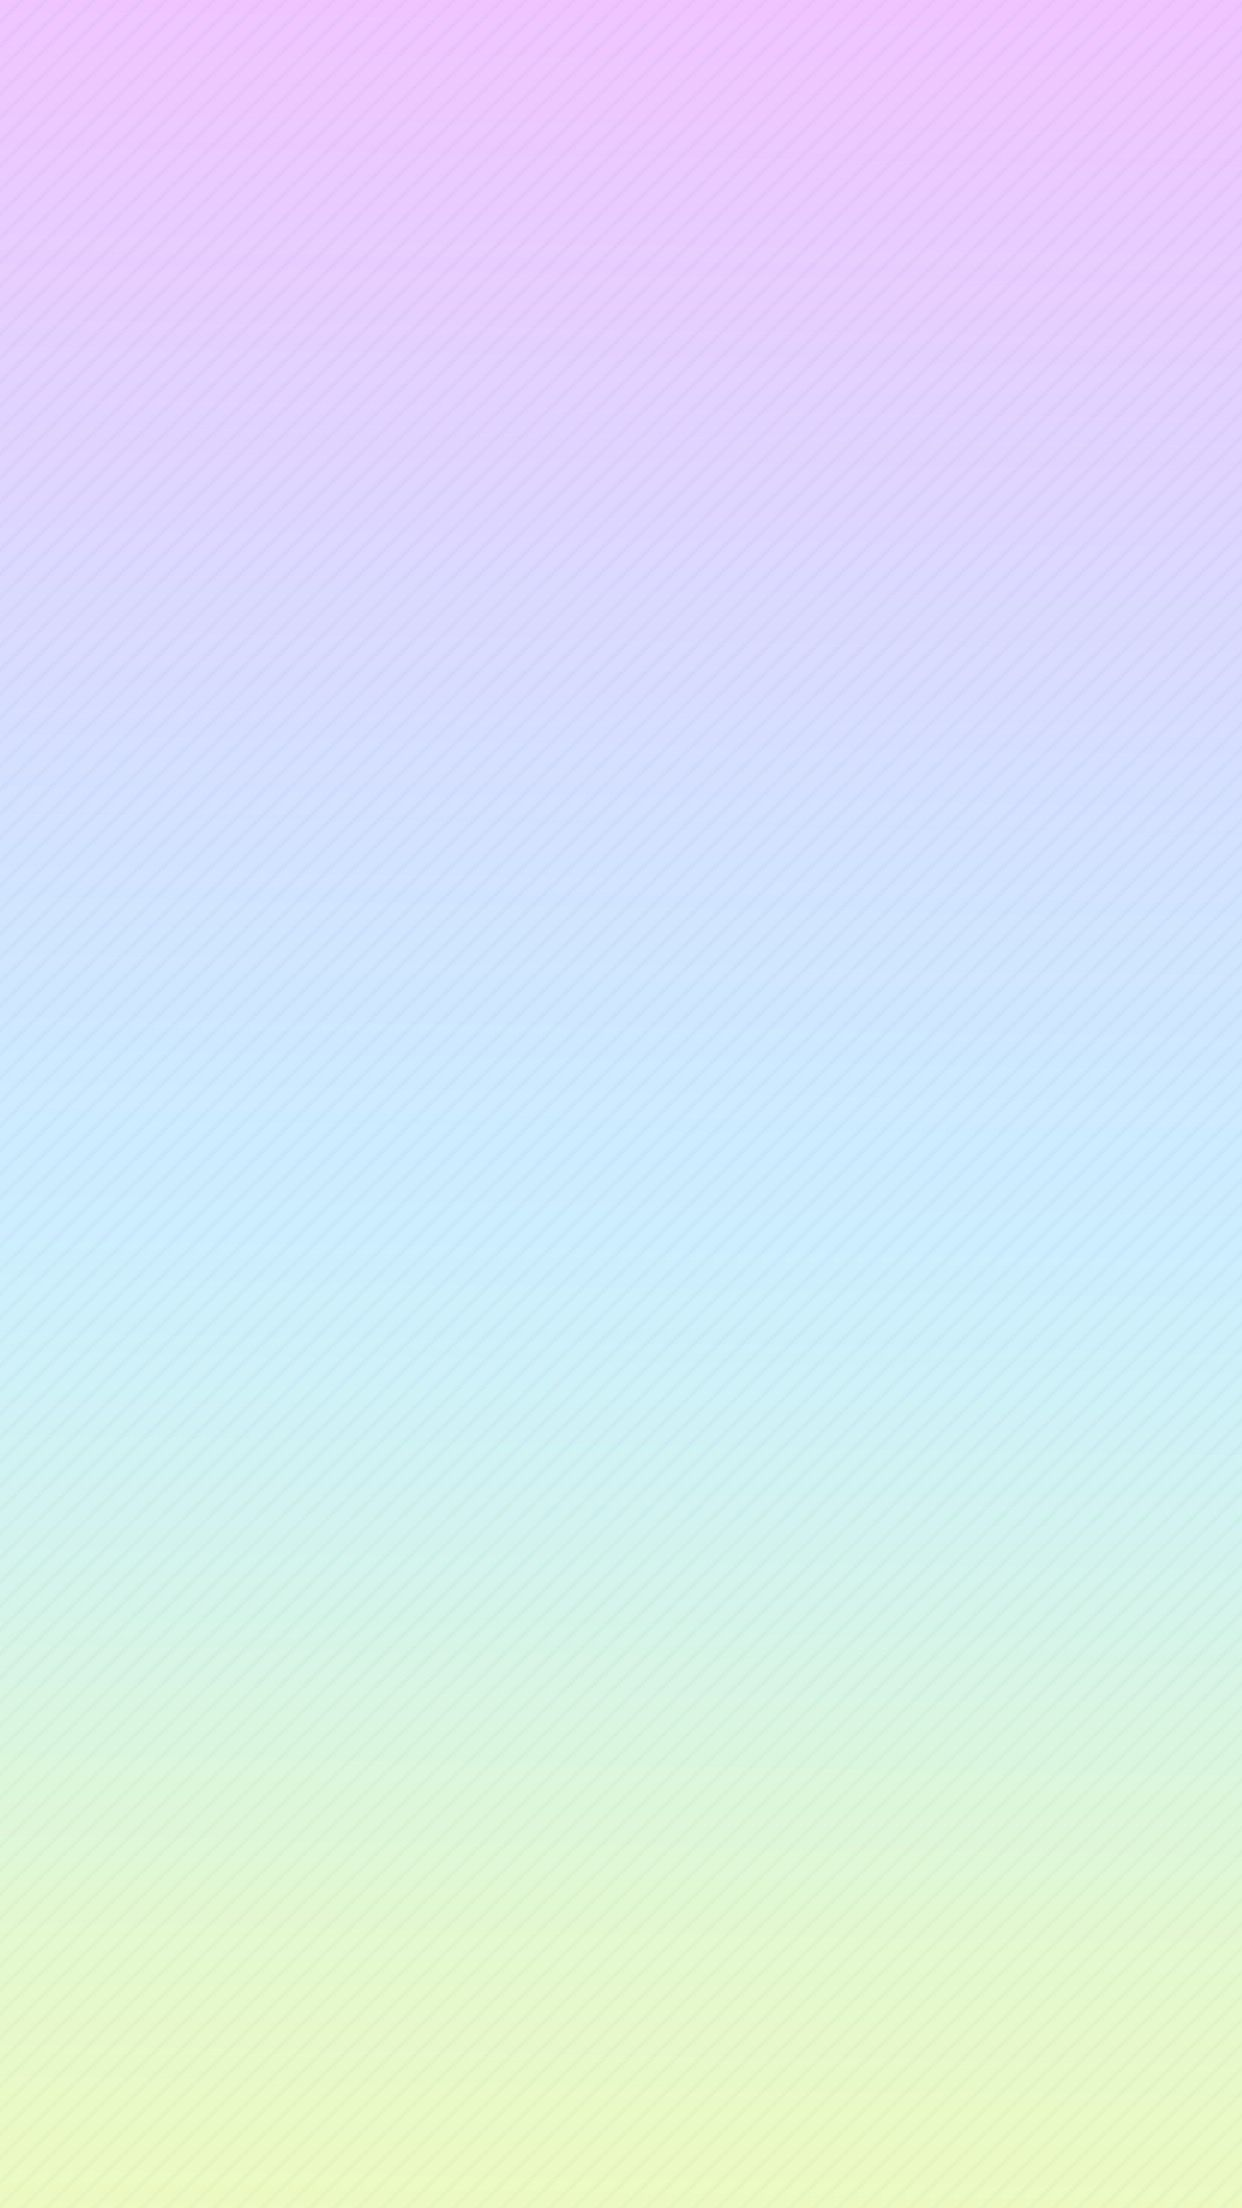 Wallpaper Background Iphone Android Hd Pink Blue Purple Green Gradient Ombre Oboi Fony Polosatyj Oboi Razmytyj Fon